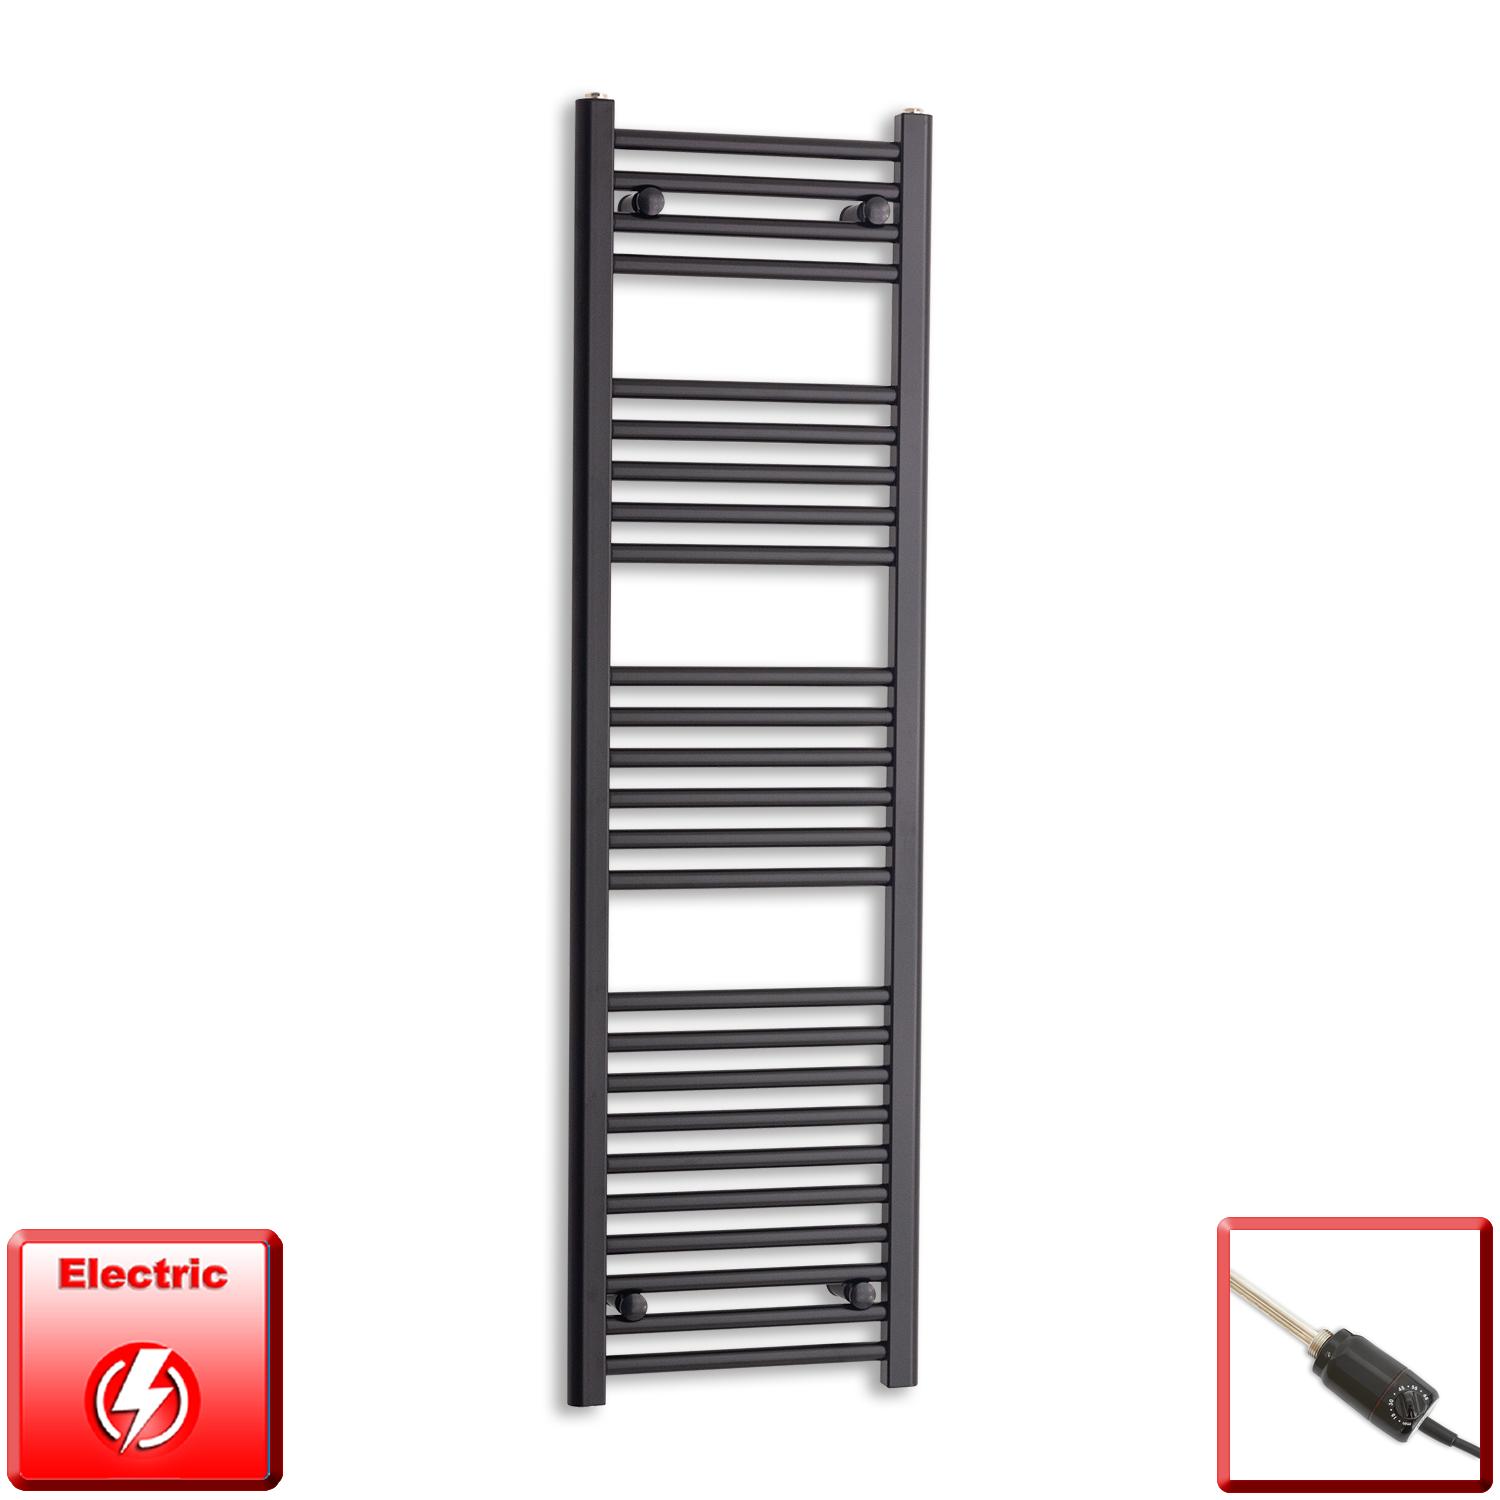 400mm Wide 1400mm High Pre-Filled Black Electric Towel Rail Radiator With Thermostatic GT Element